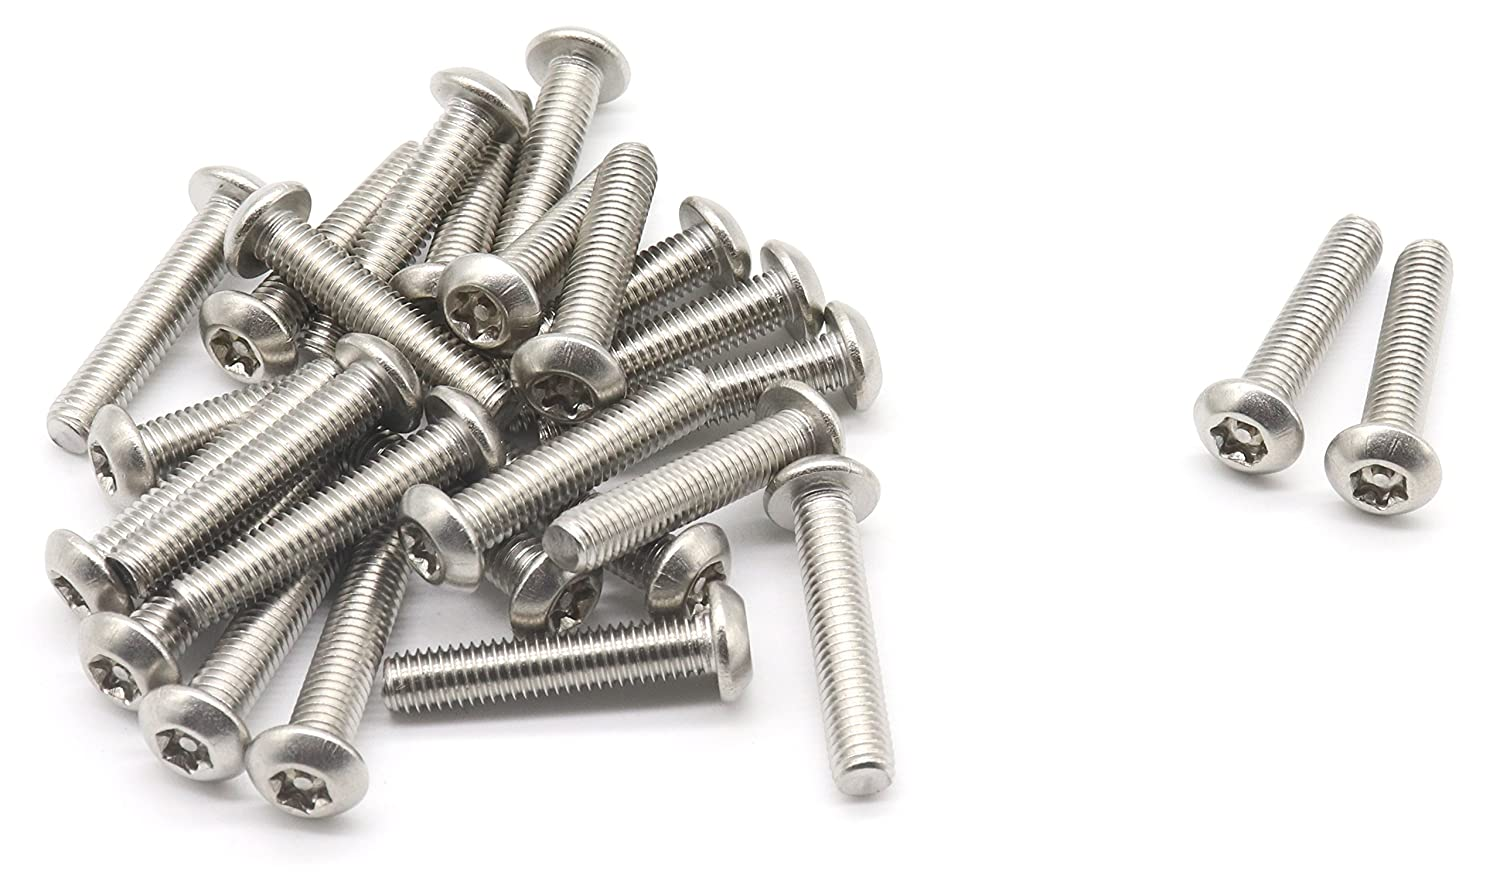 Qty 10 Button Post Torx M4 x 50mm Stainless T20 Security Screws Tamperproof